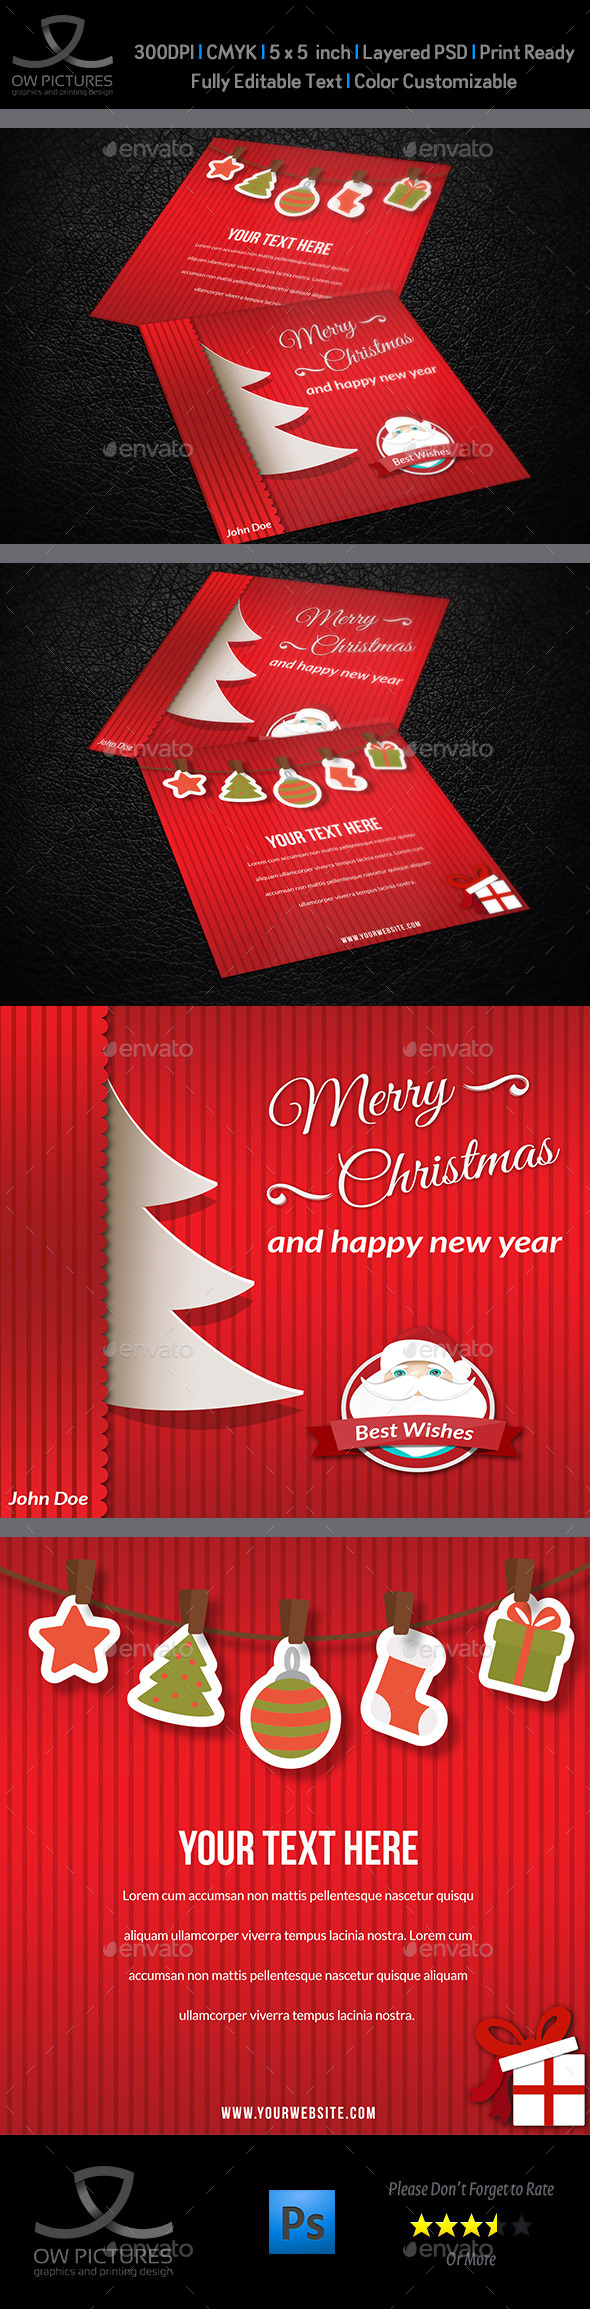 Christmas and New Year Greeting Card Vol.3 - Greeting Cards Cards & Invites